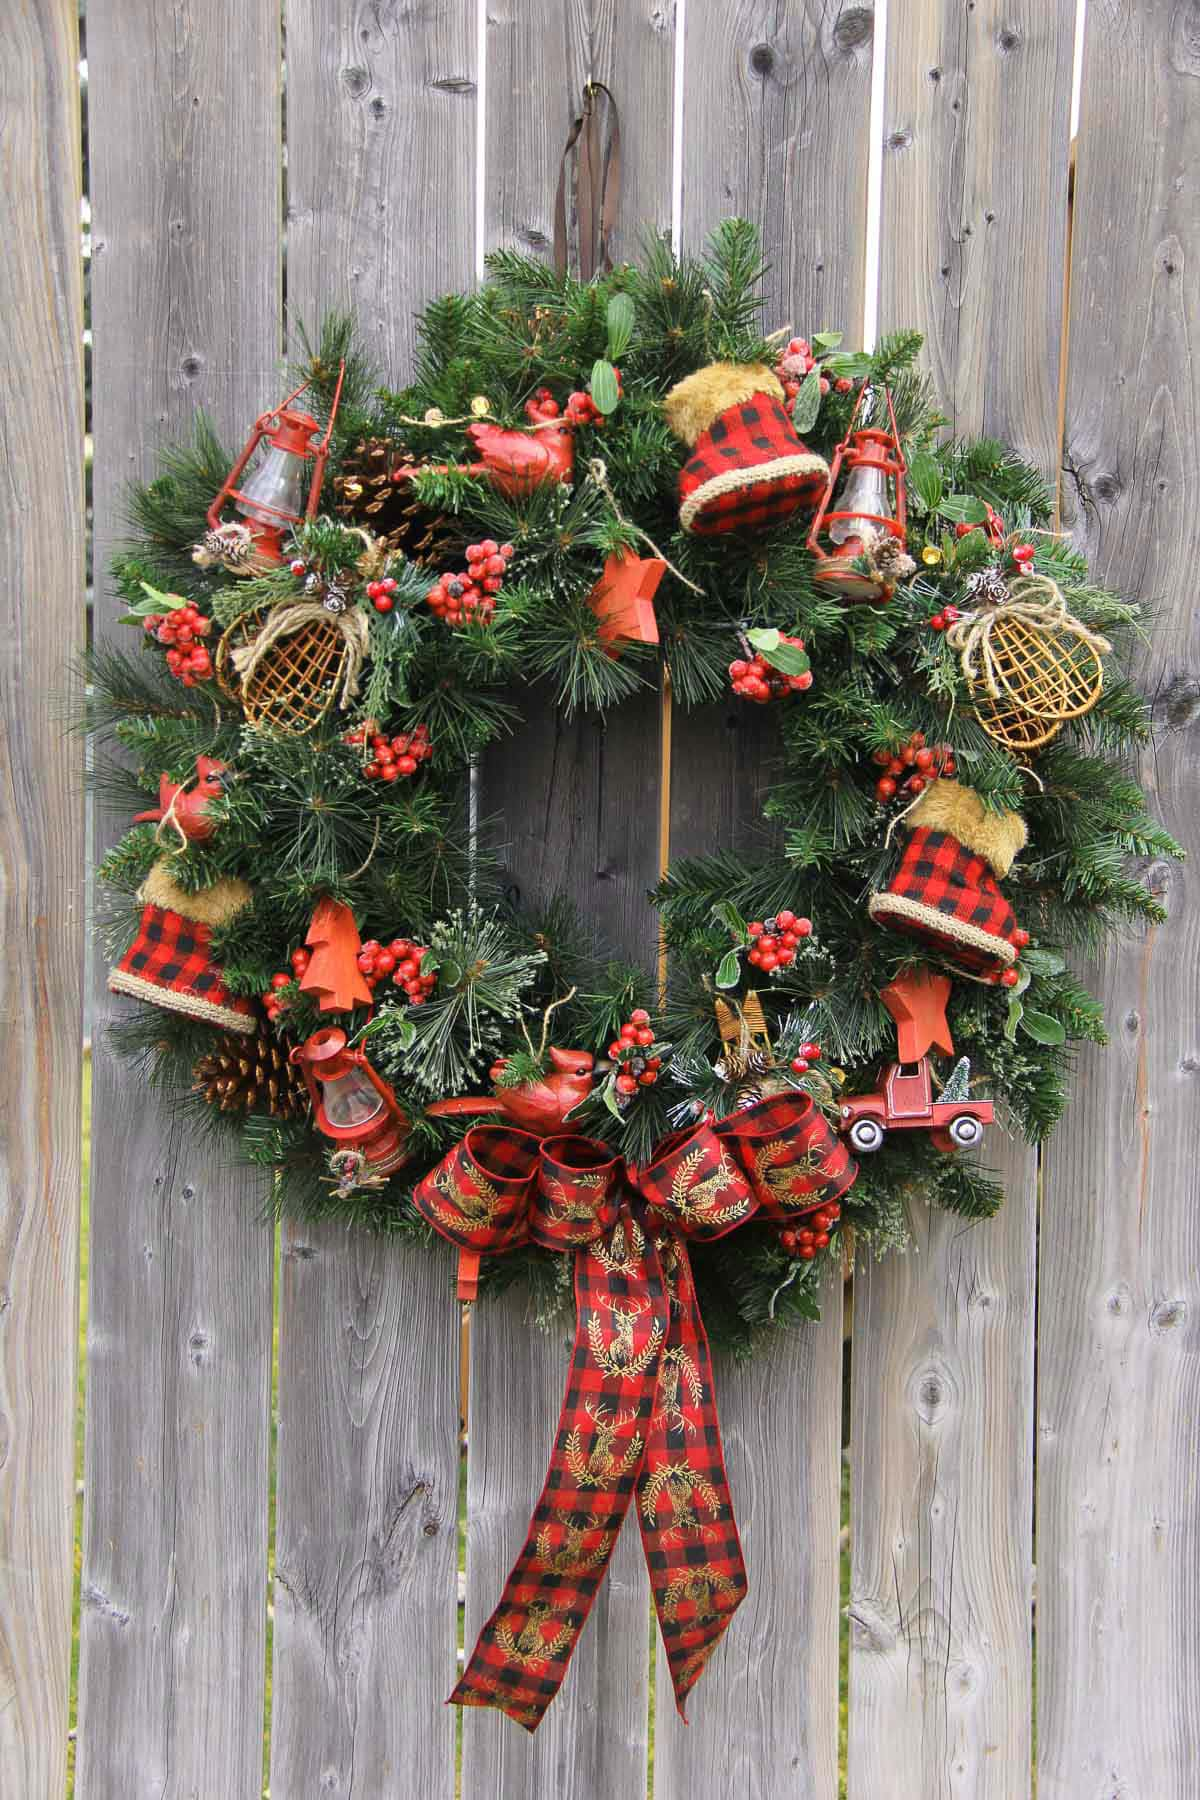 Comfort & Joy Christmas Wreath